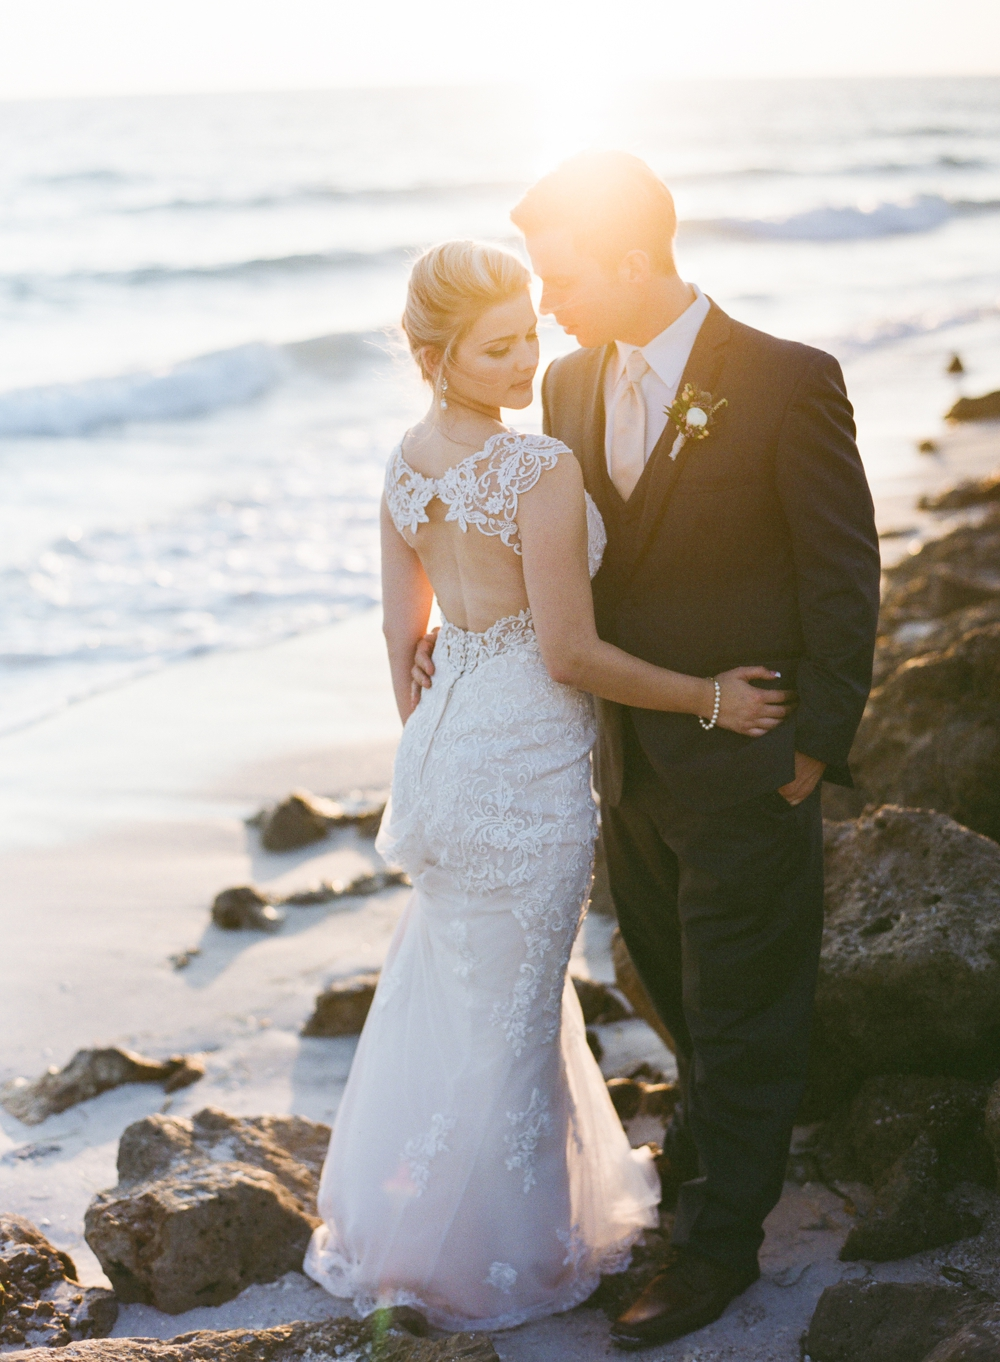 2016 HLM Wedding Beach Shoot 25.jpg